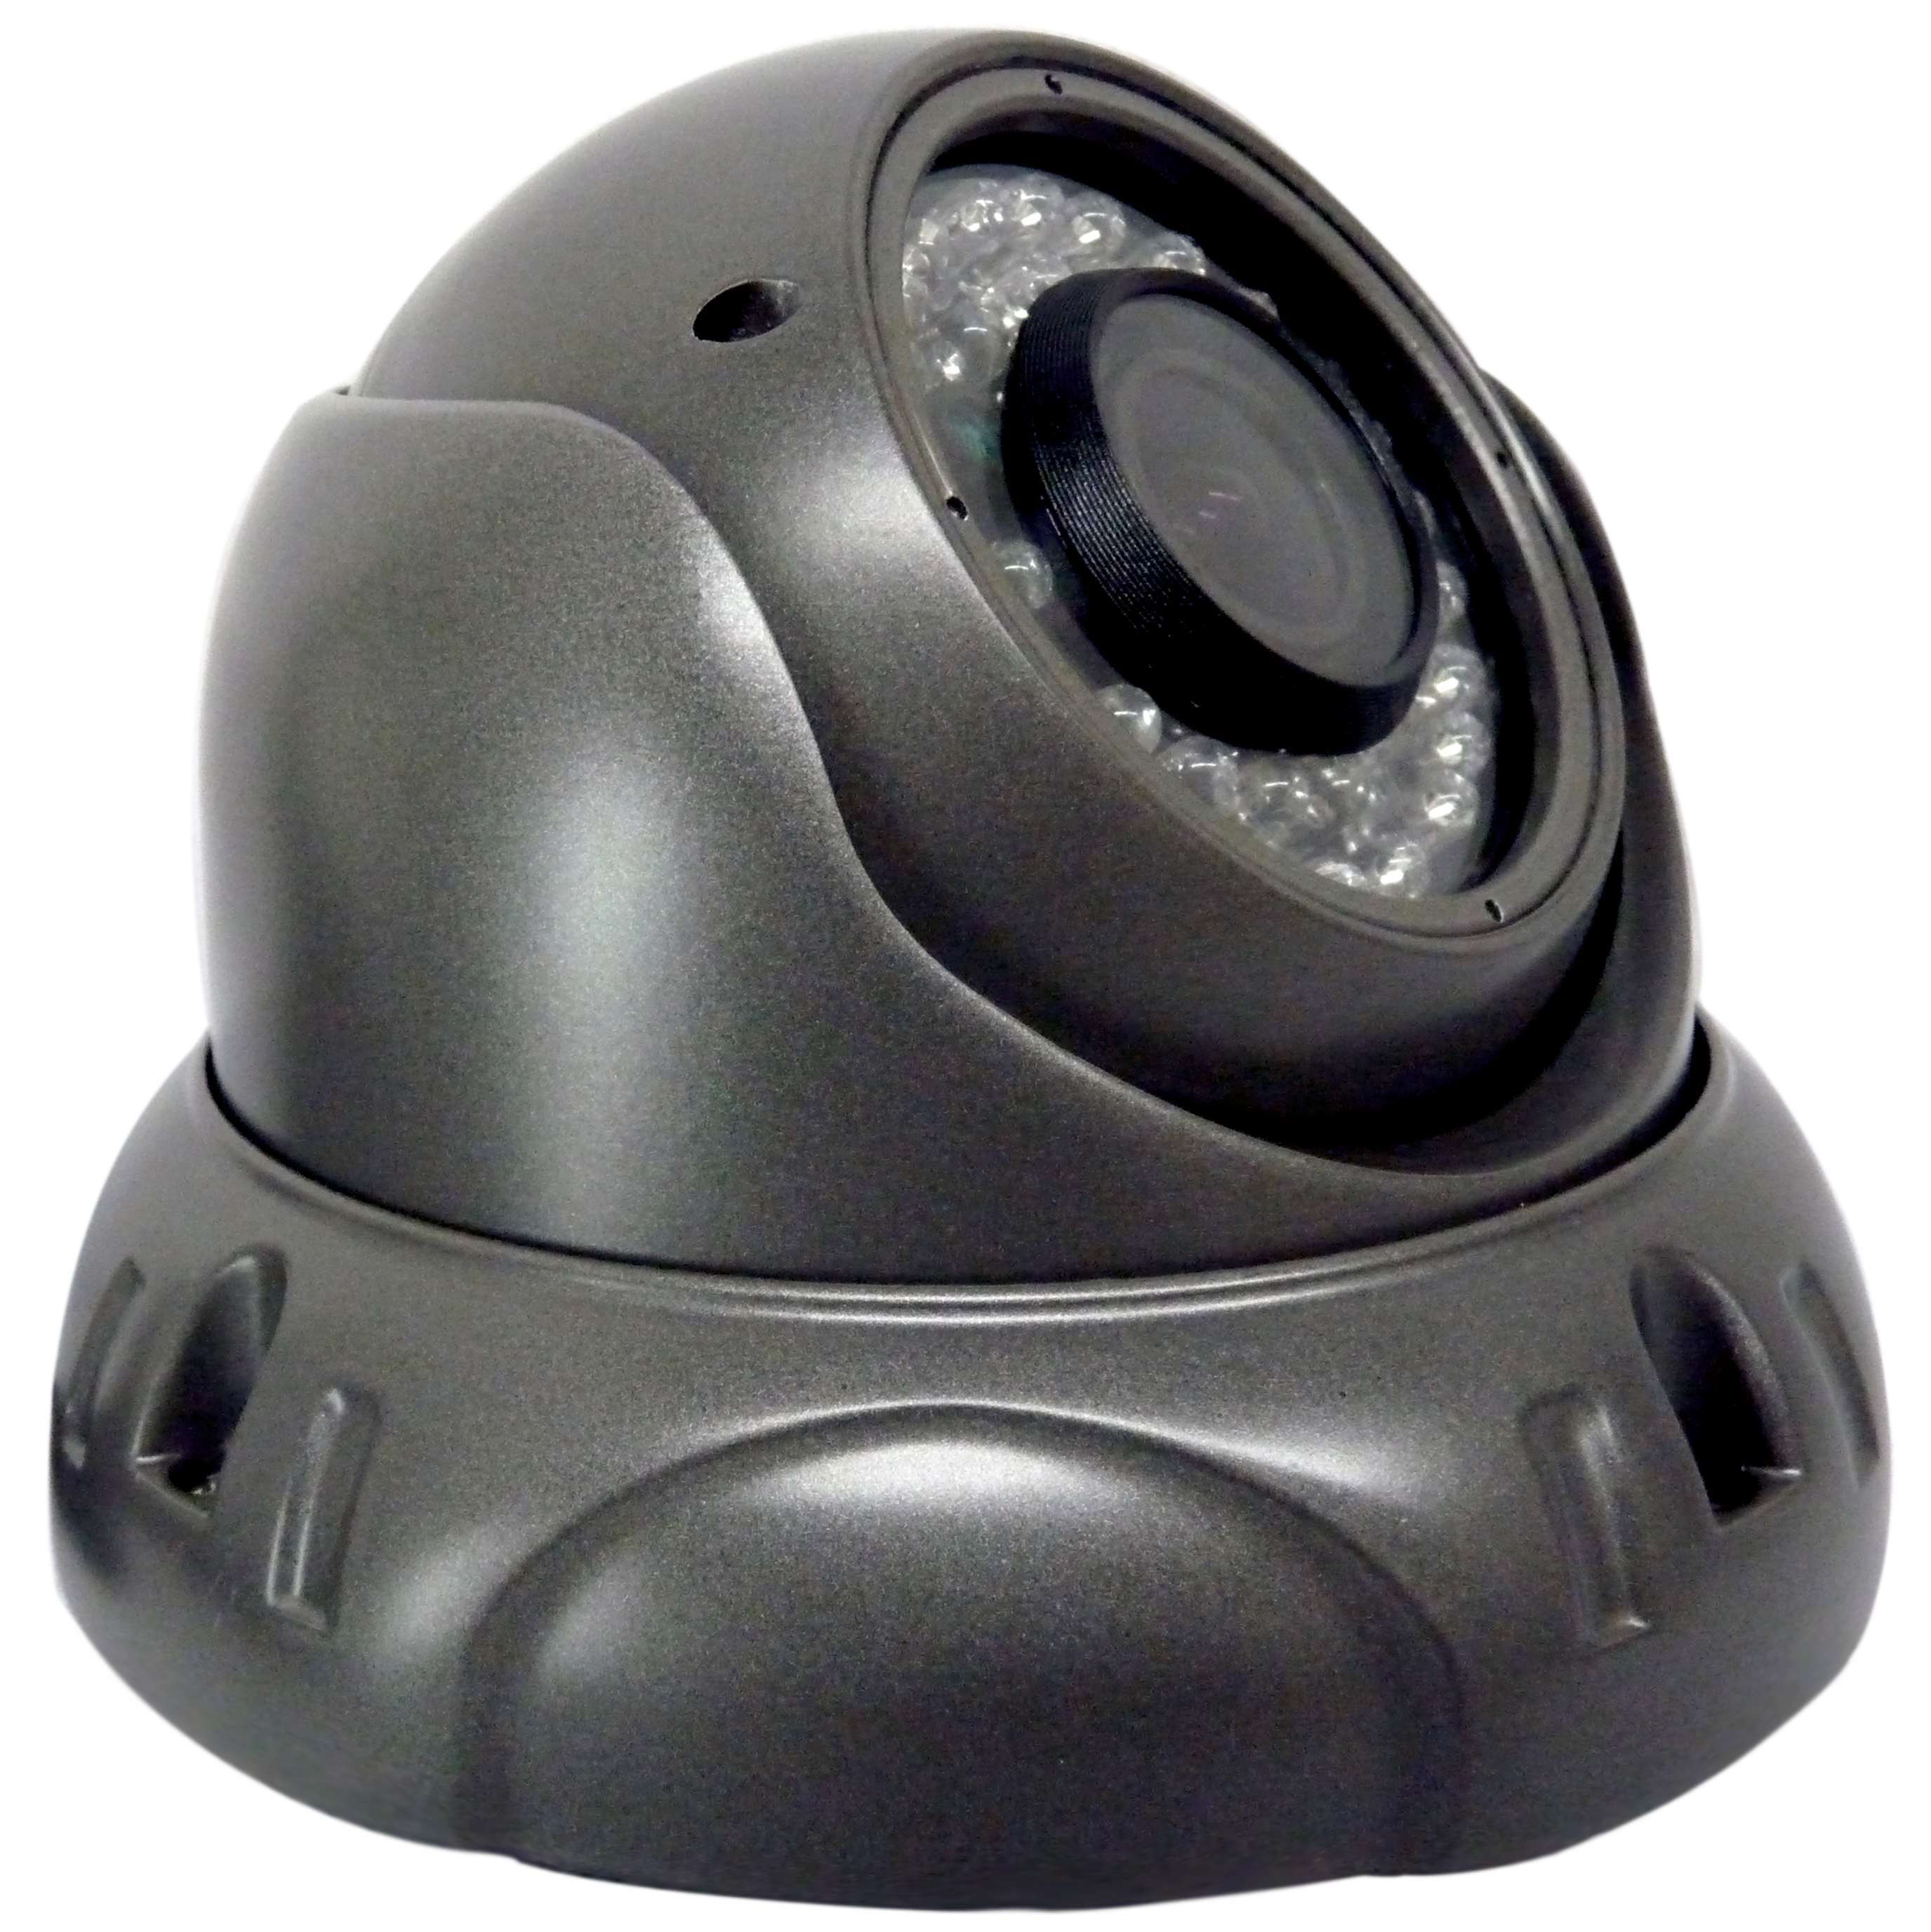 DBS R610G - 700TVL CCTV Dome Security Camera - 1/3'' Sony Super HAD CCD II